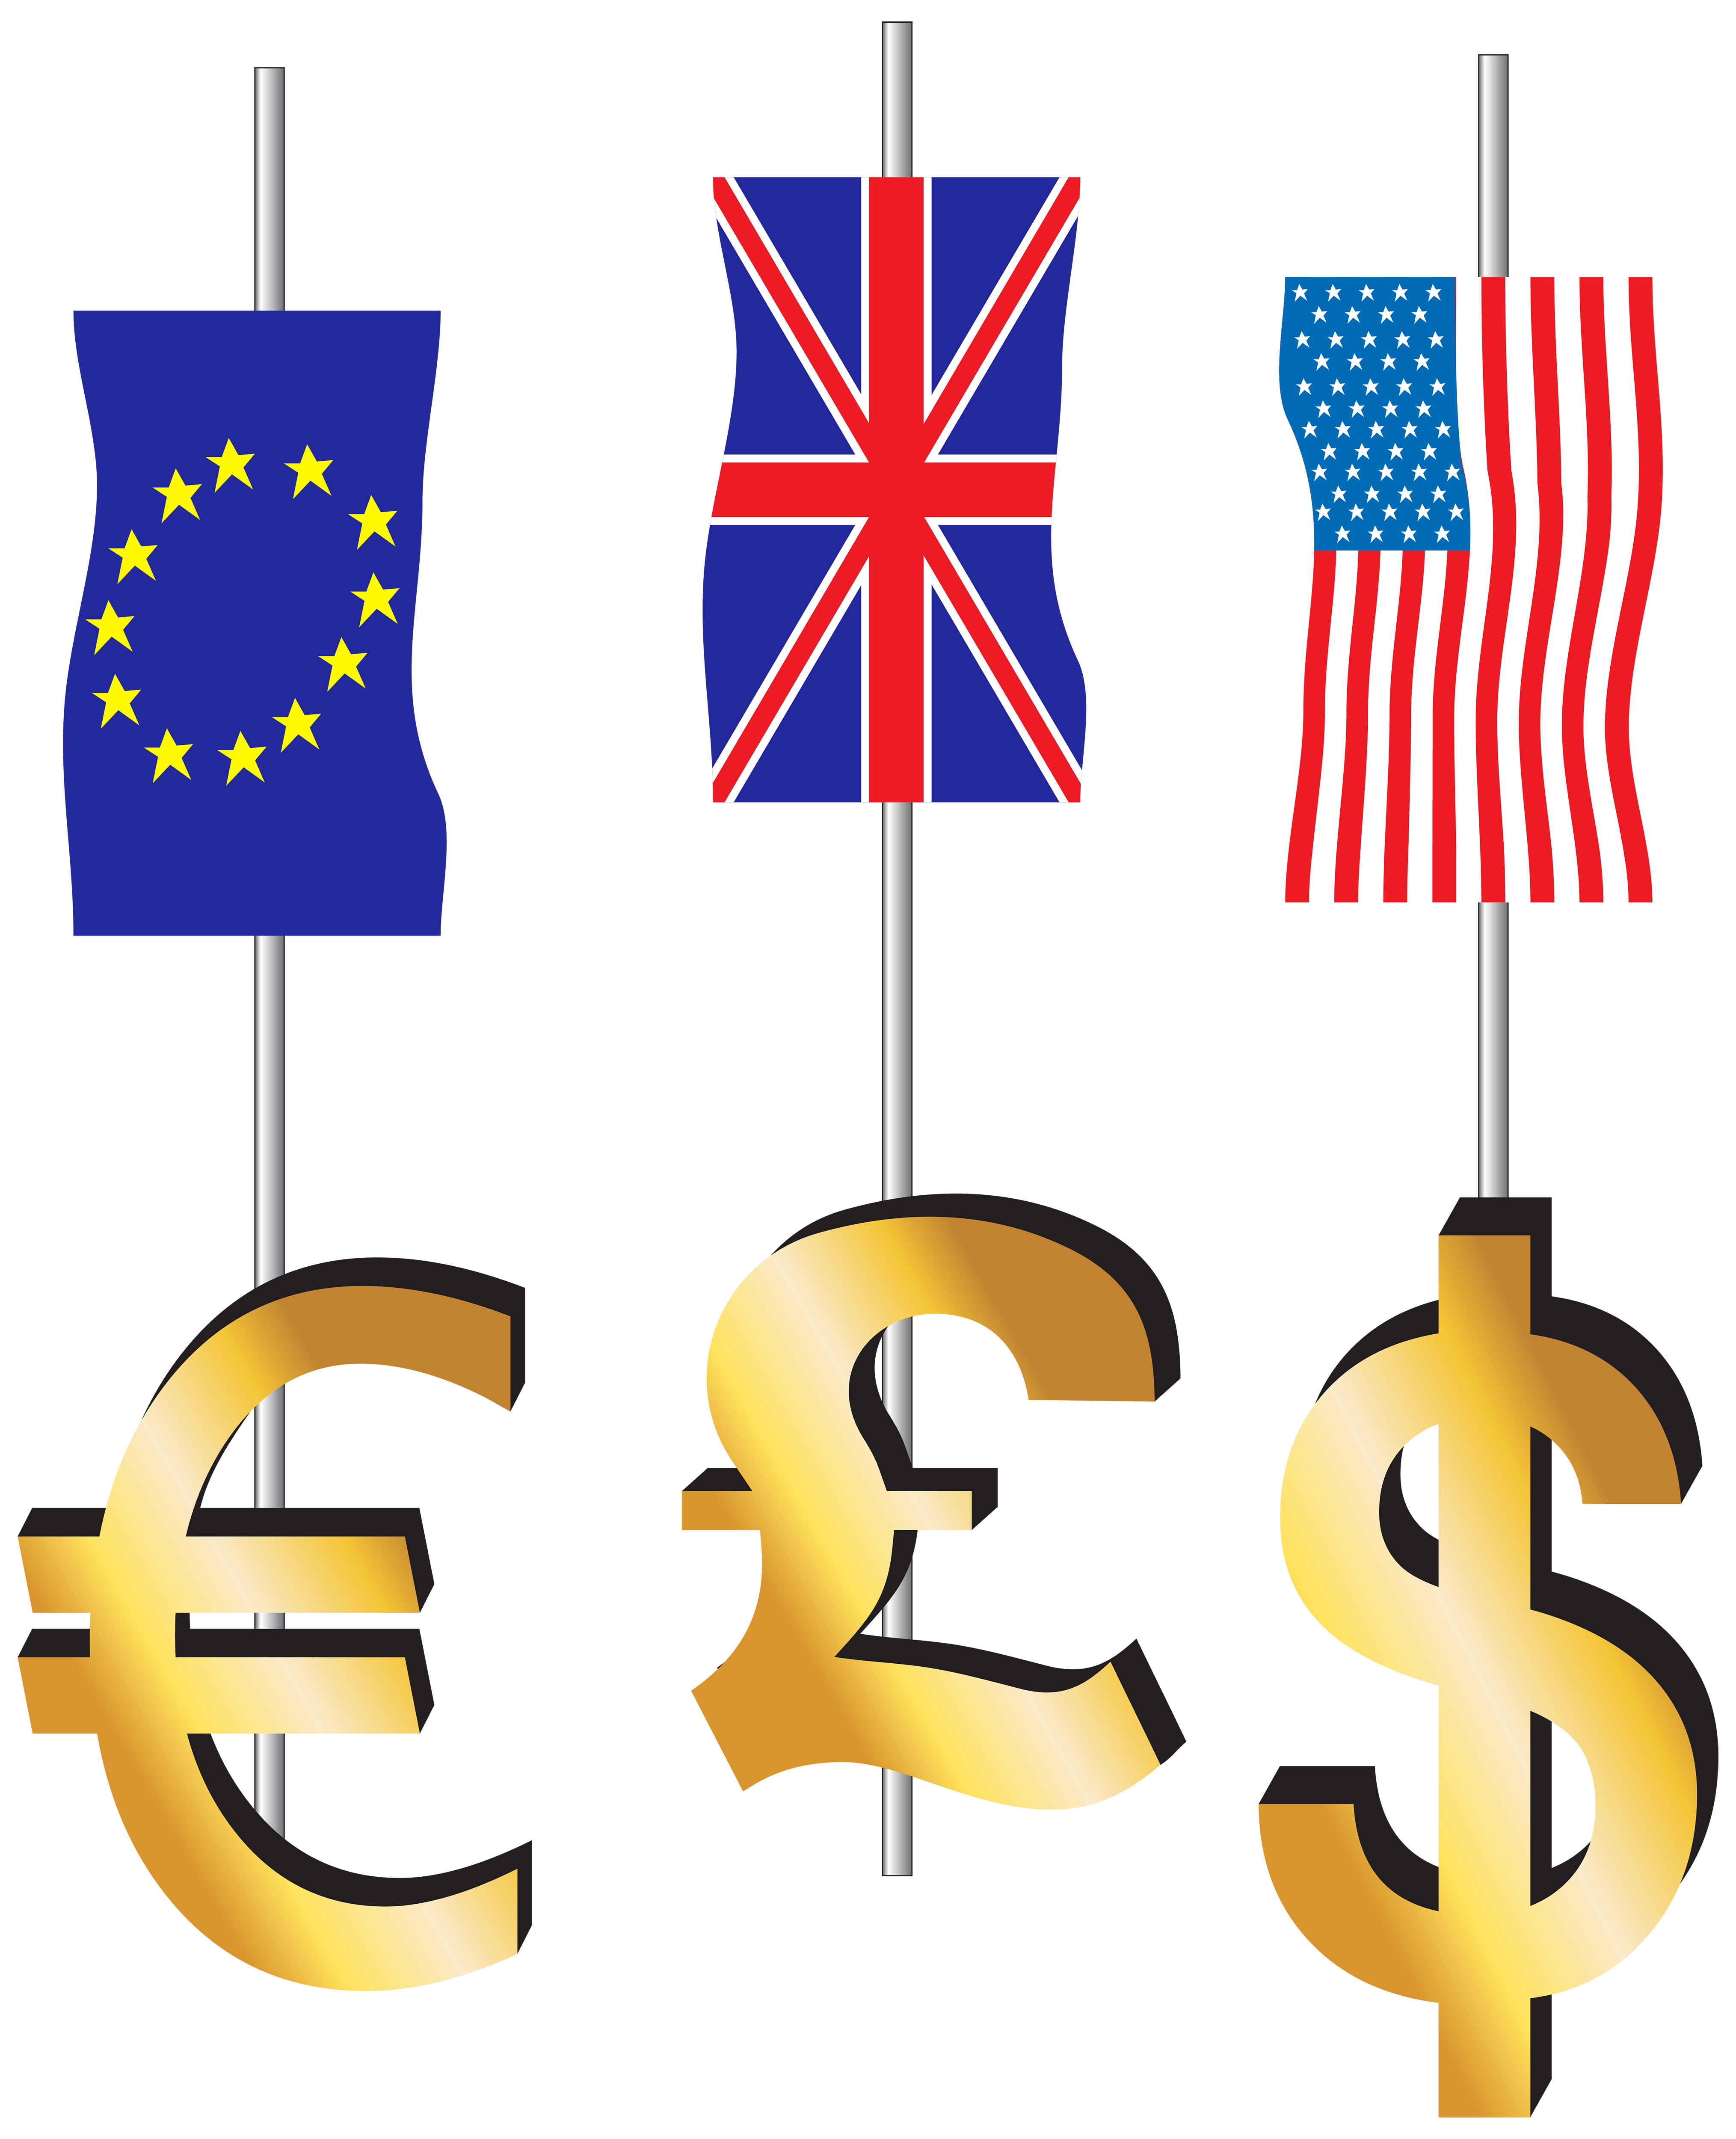 Dollar sign png transparent. Euro pound signs and